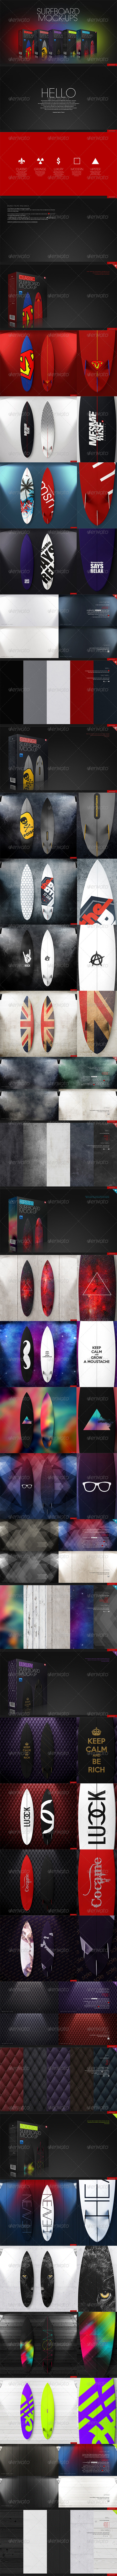 GraphicRiver Surfboard 5 Scenes Mock-up 7778037